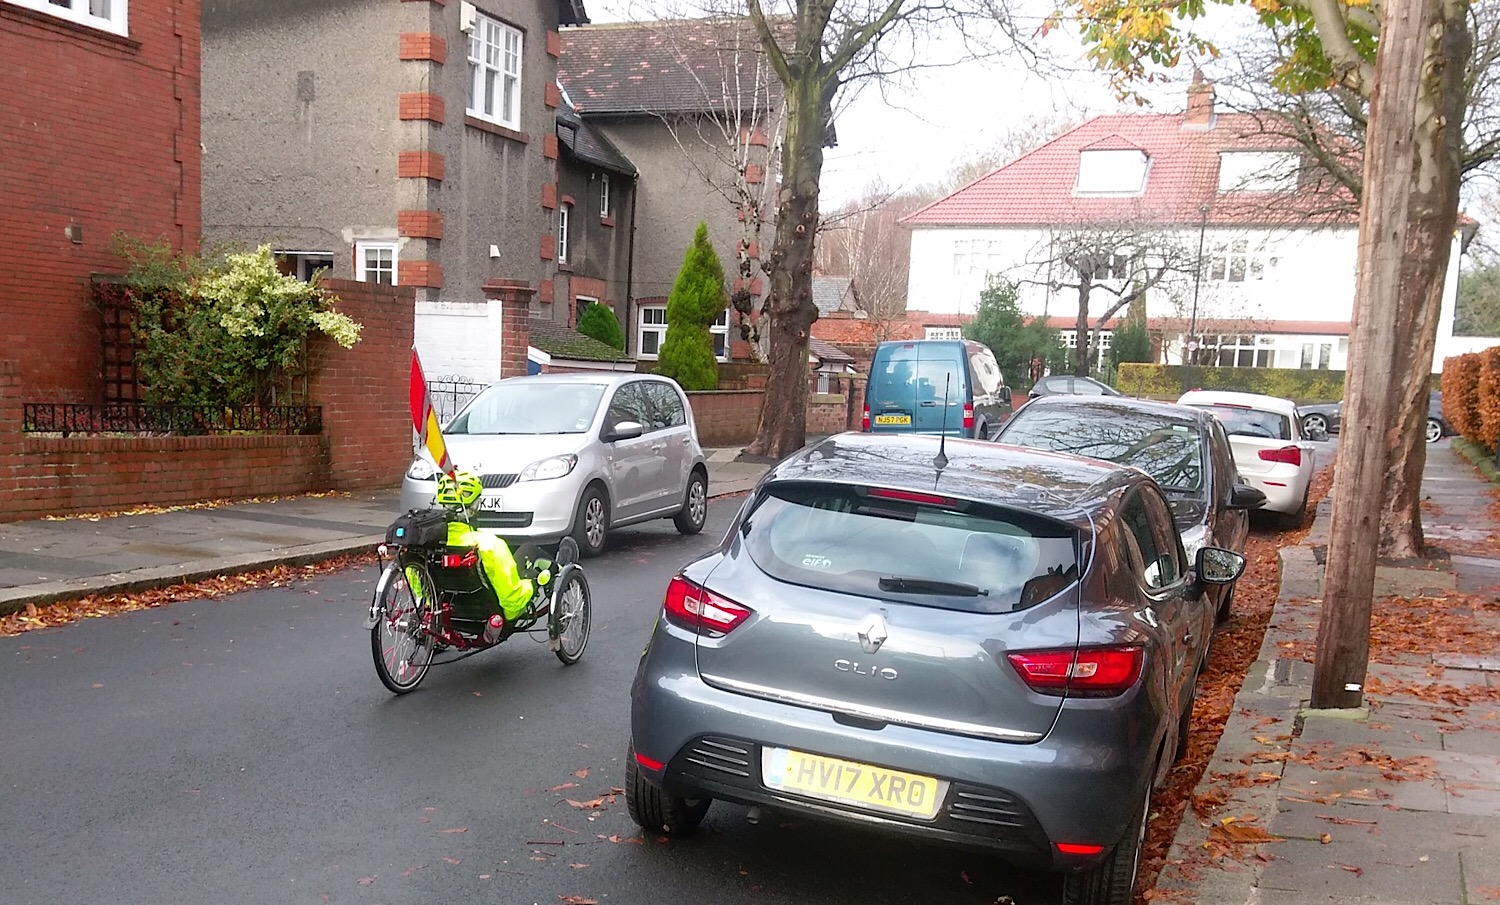 Photo of a recumbent cycle travelling between parked cars in West Gosforth.